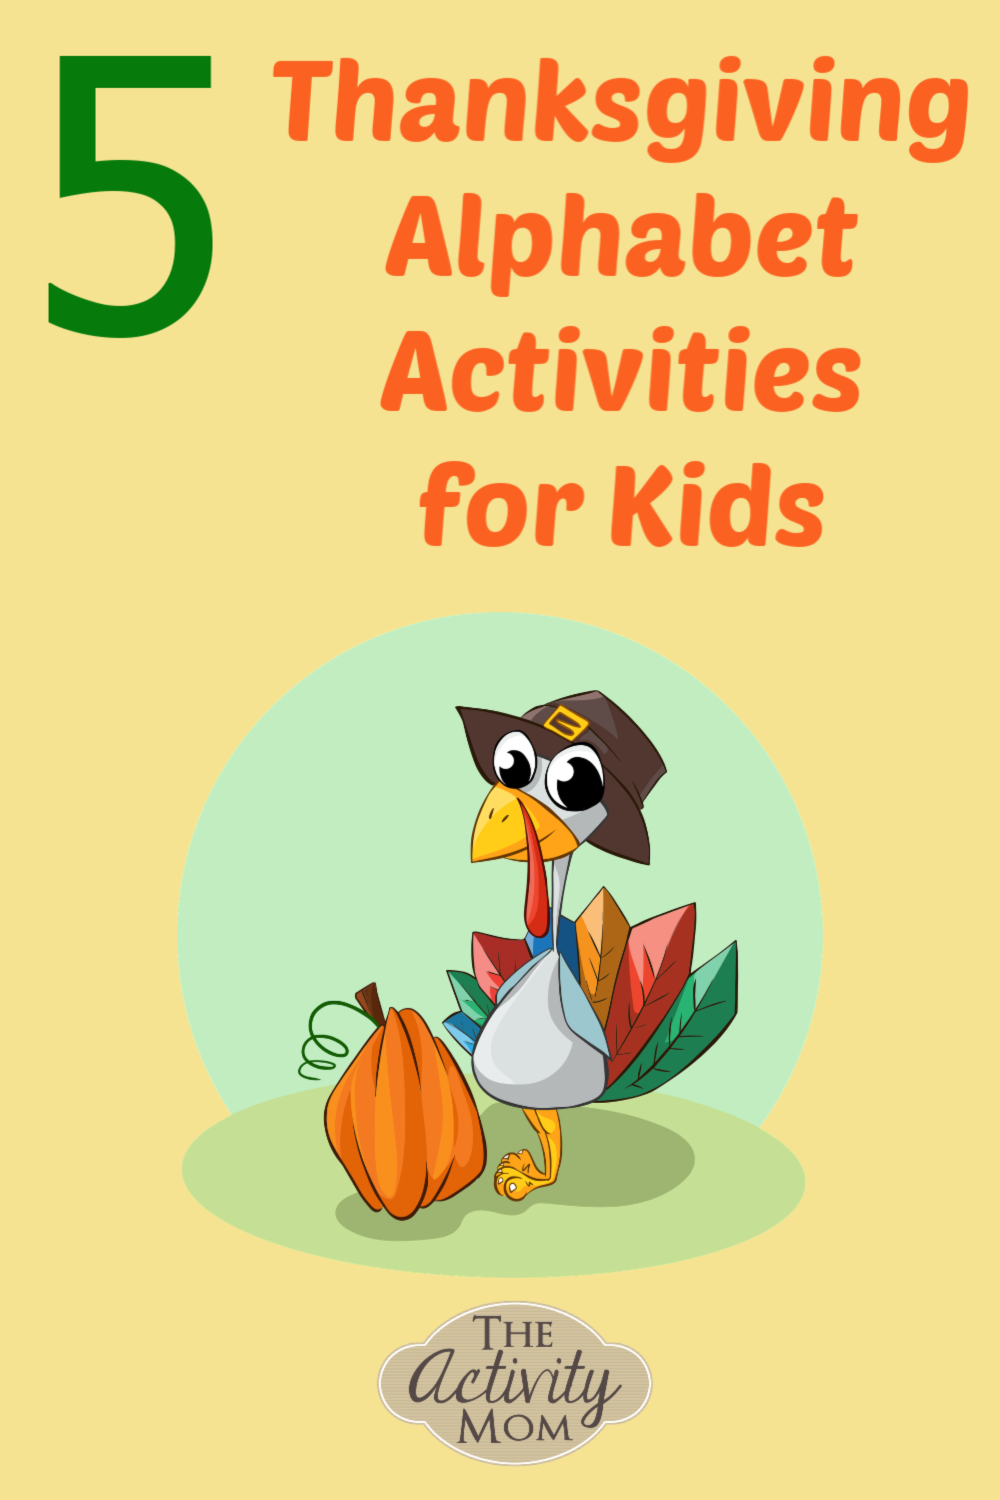 Thanksgiving Alphabet Activities